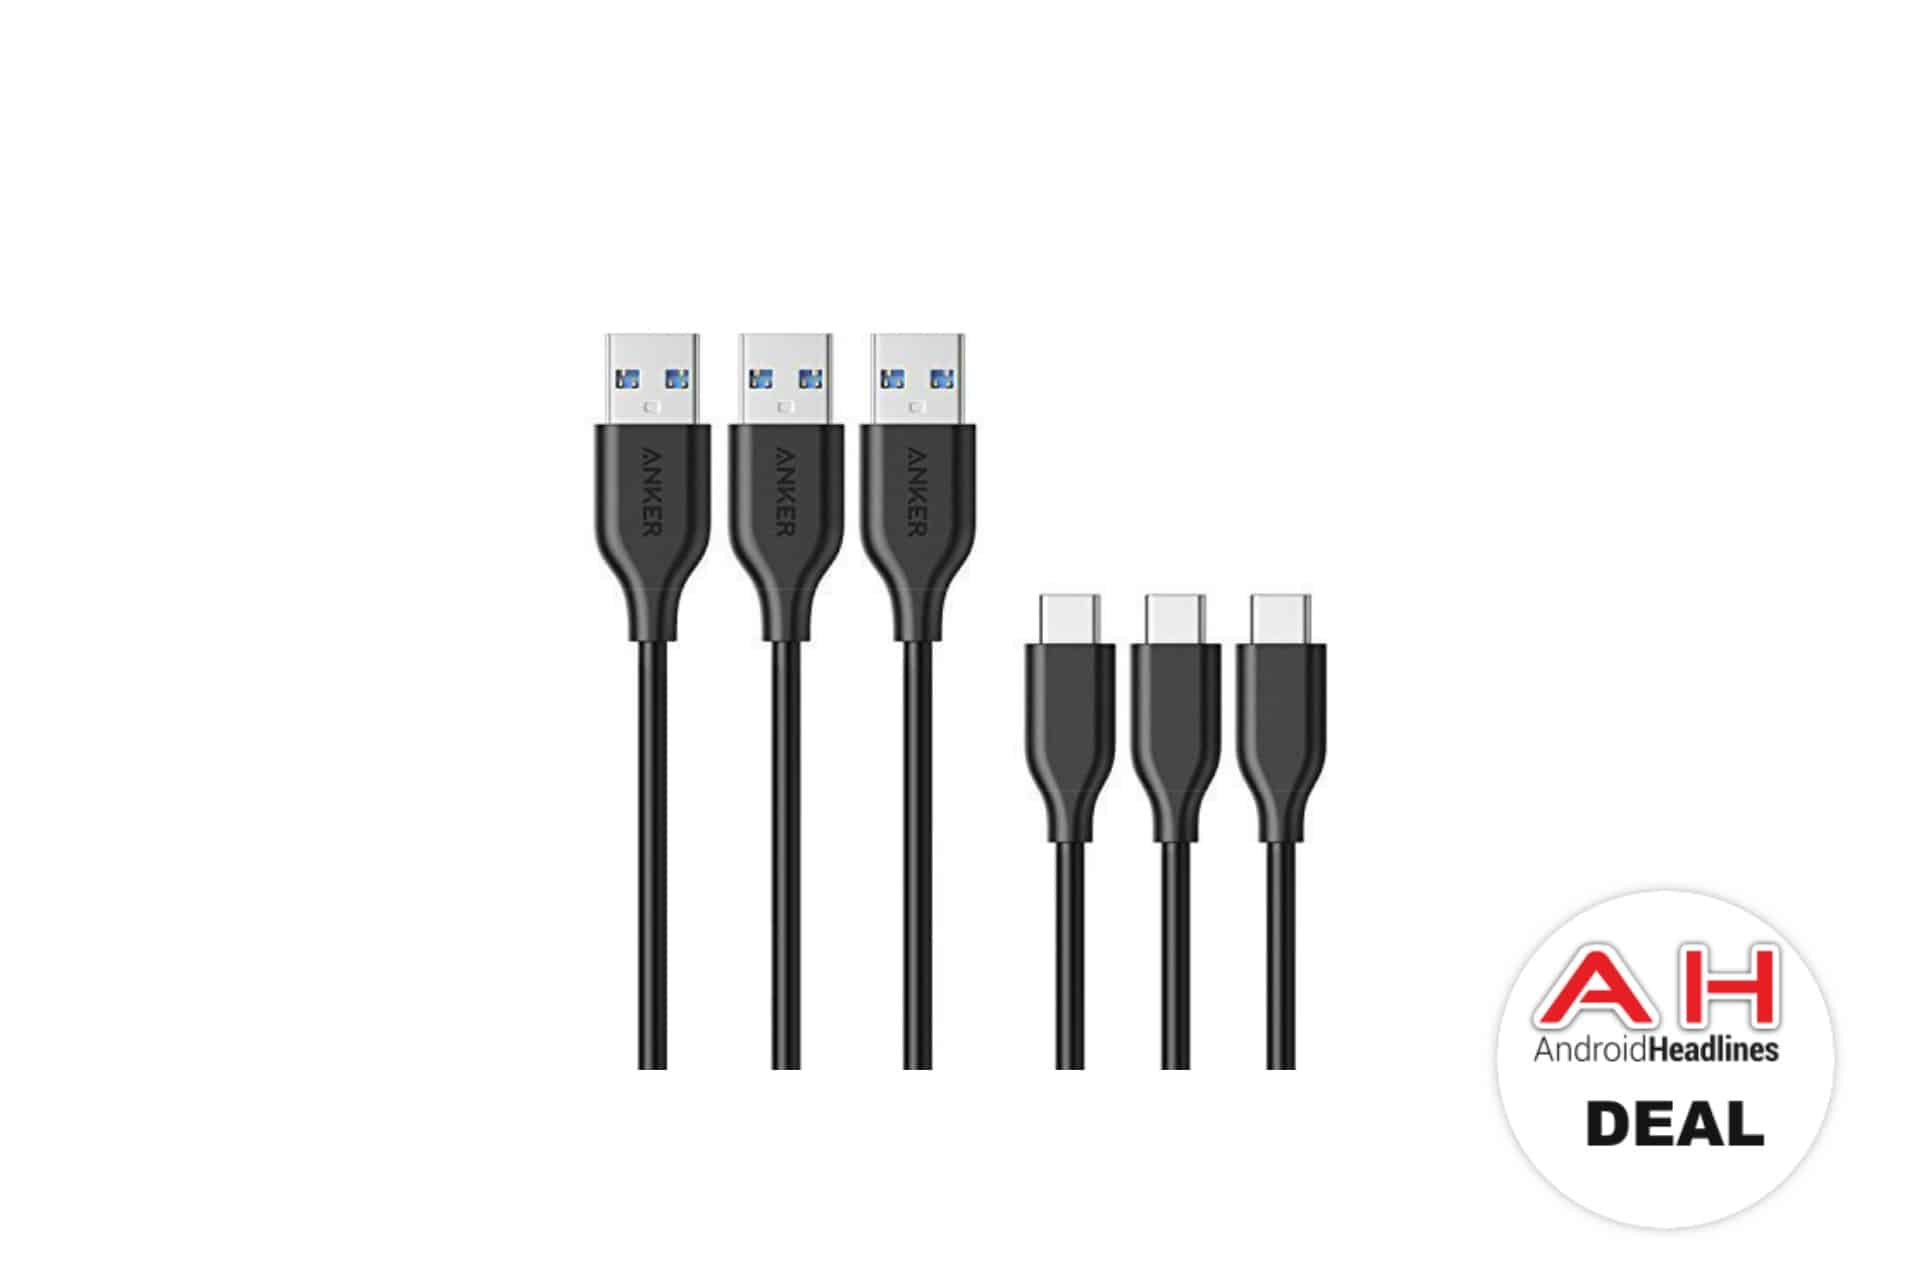 Anker 3 Pack Of USB C Cables Deal AH